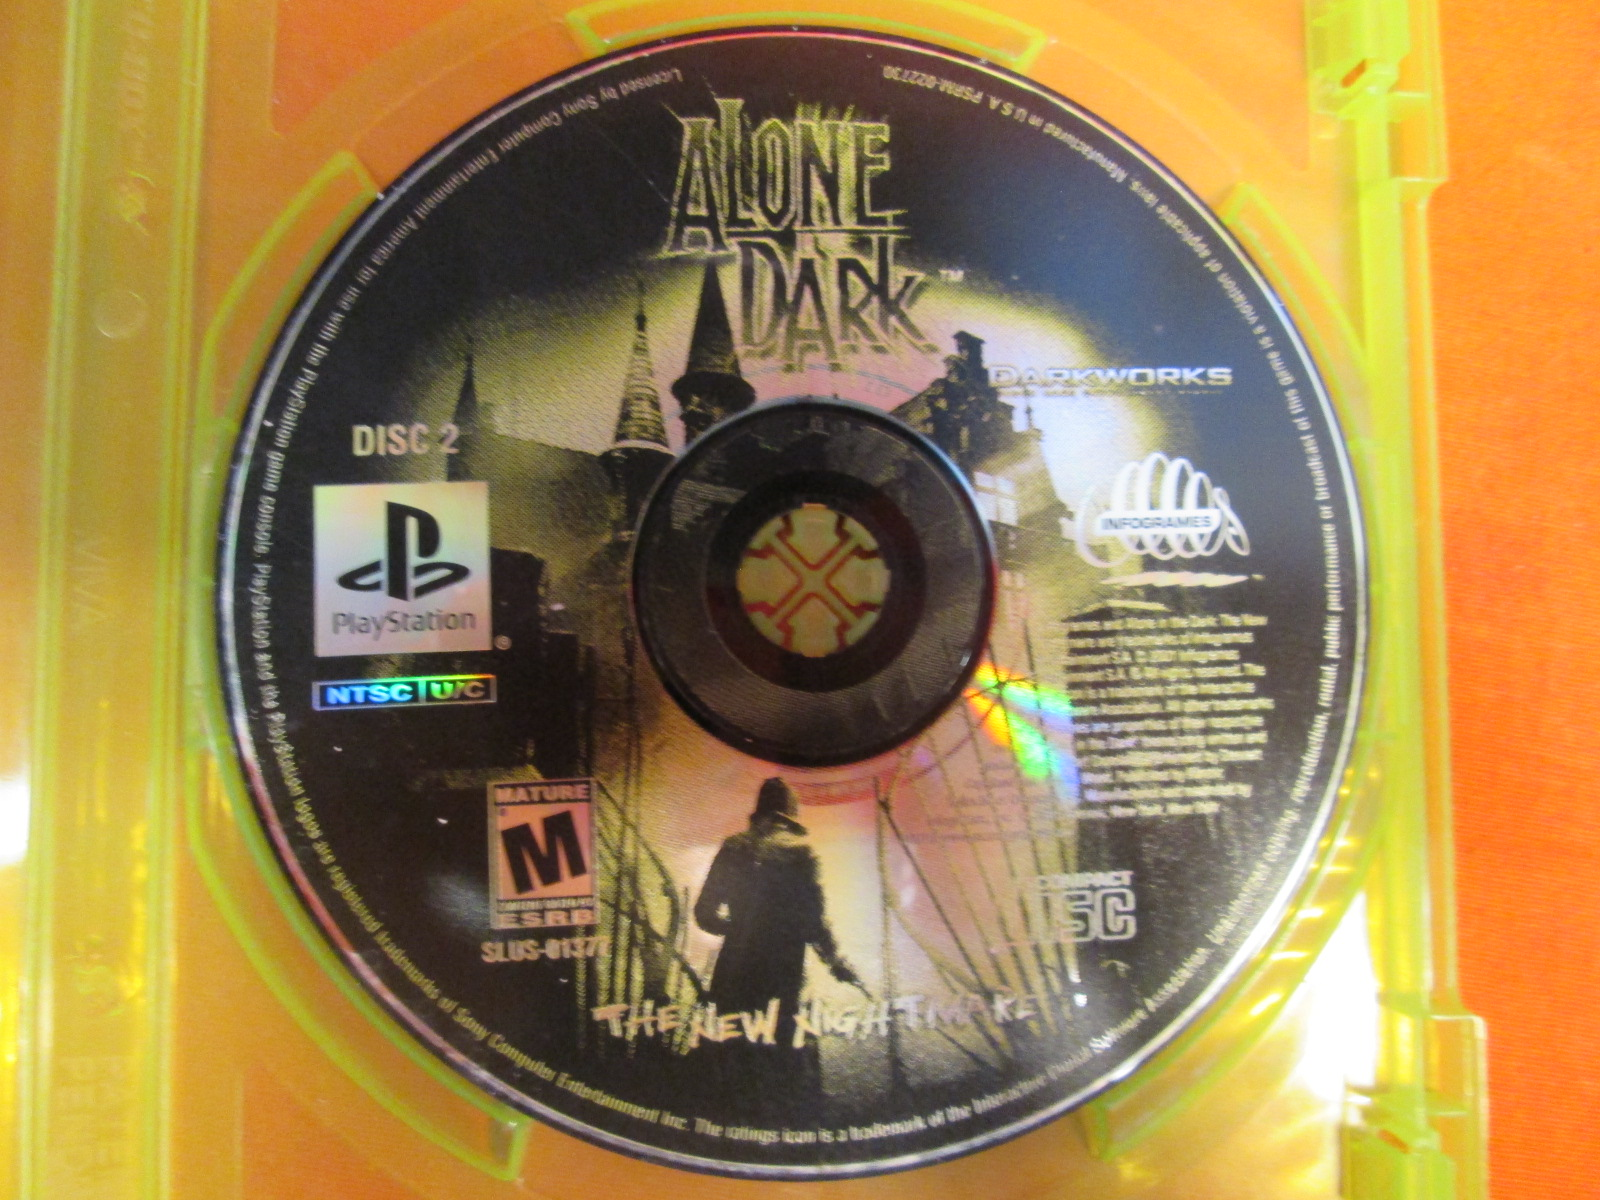 Replacement Disc 2 For Alone In The Dark 4: The New Nightmare For